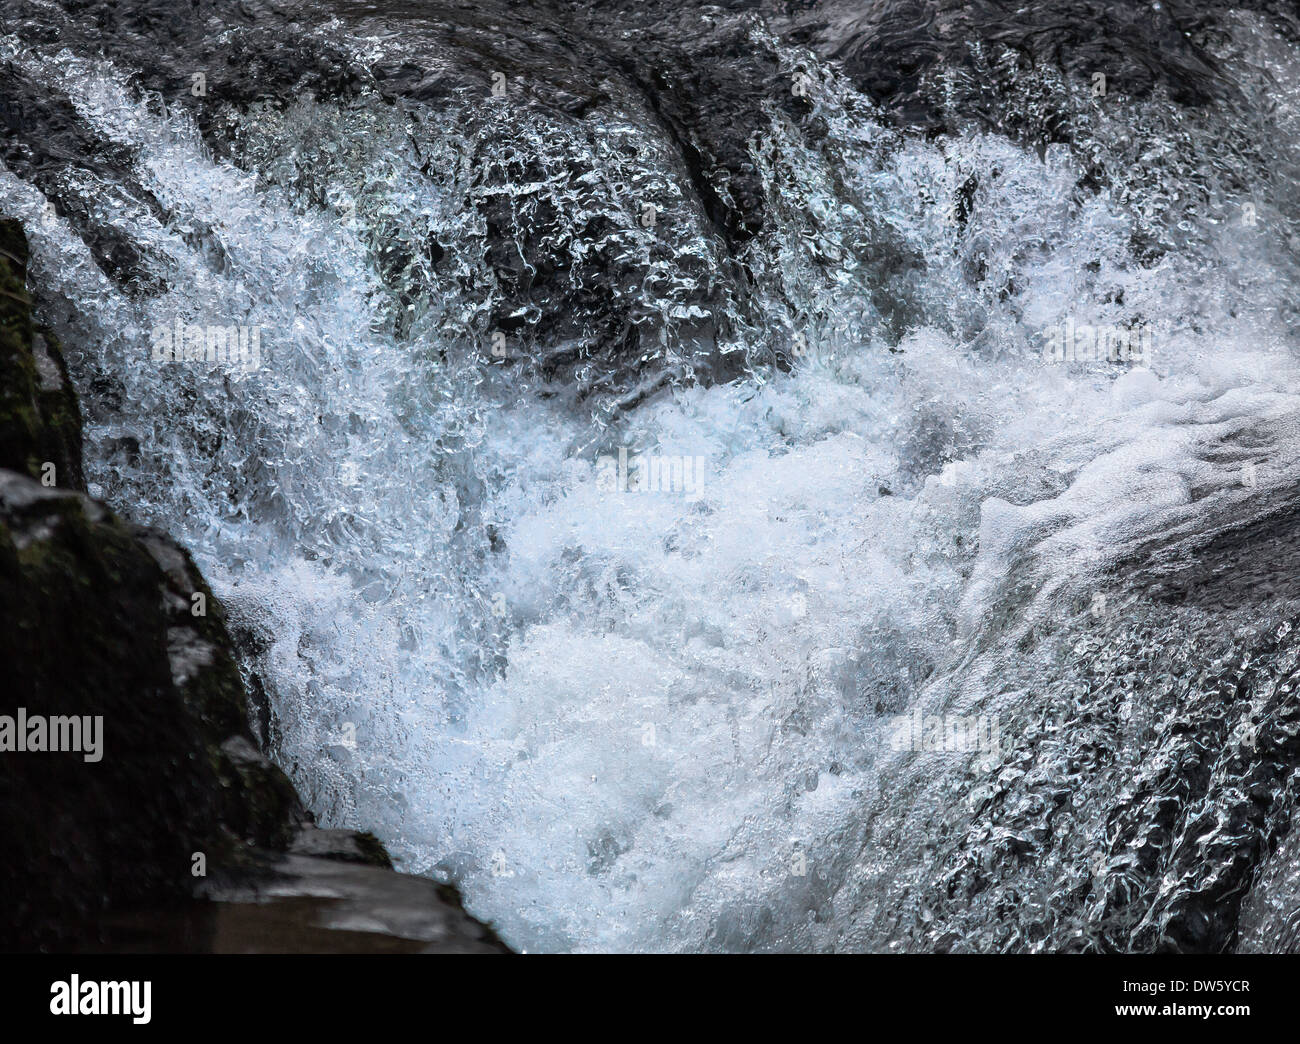 Waterfall froth and foam frozen in action - Stock Image